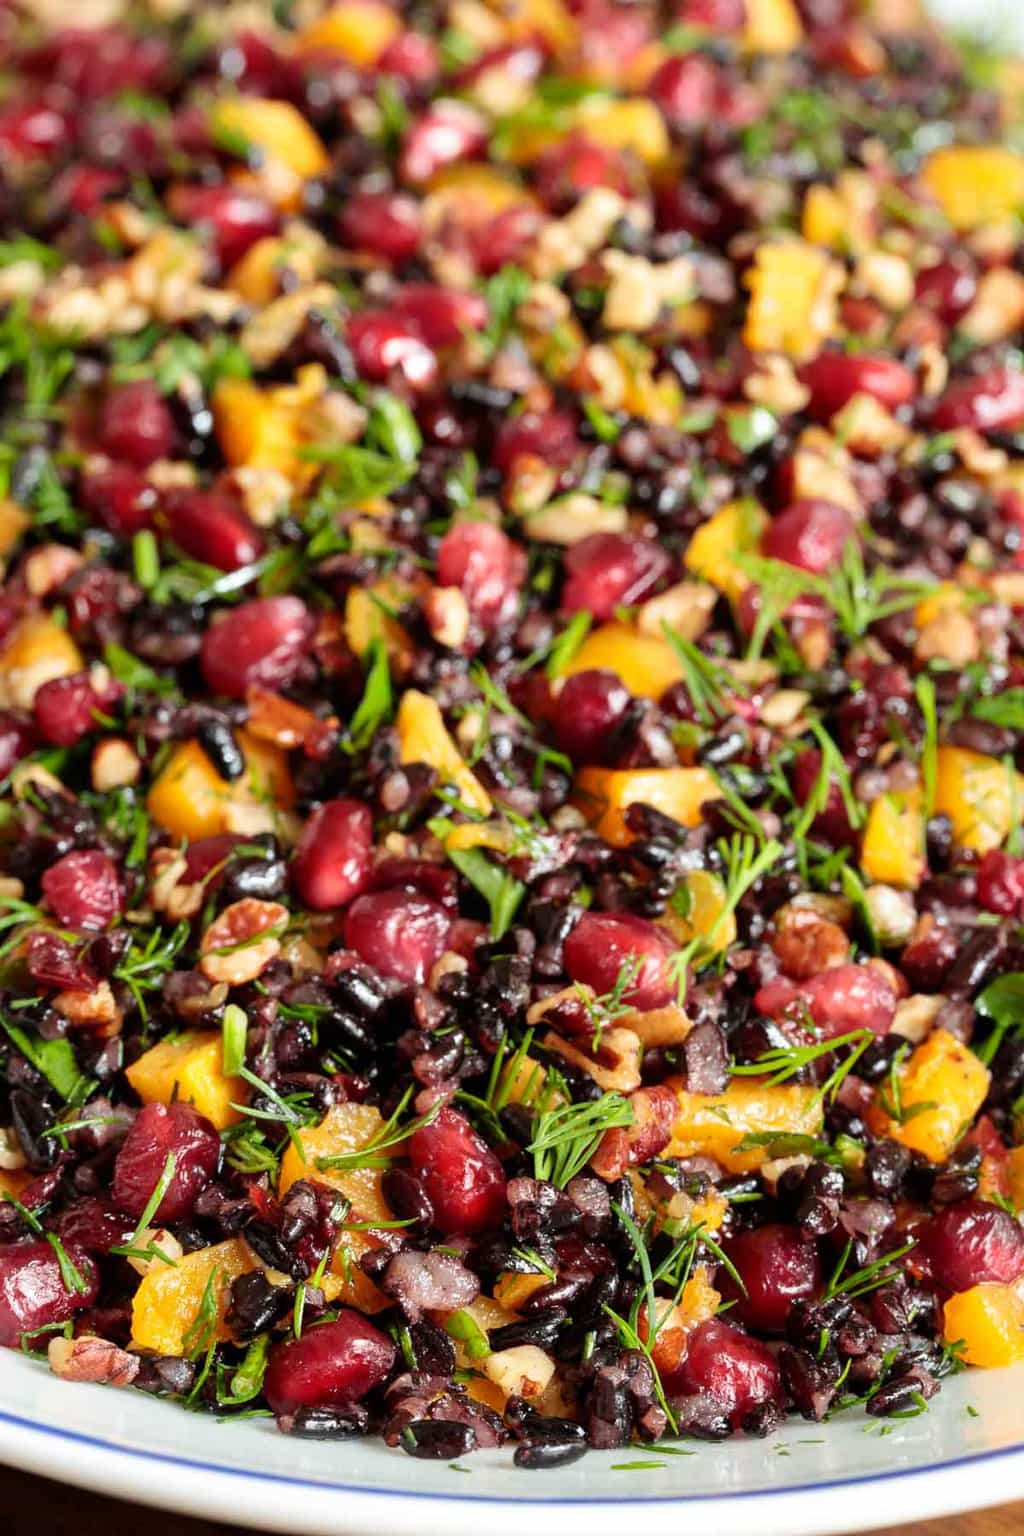 Extreme closeup photo of a platter of Butternut Squash Black Rice Salad.